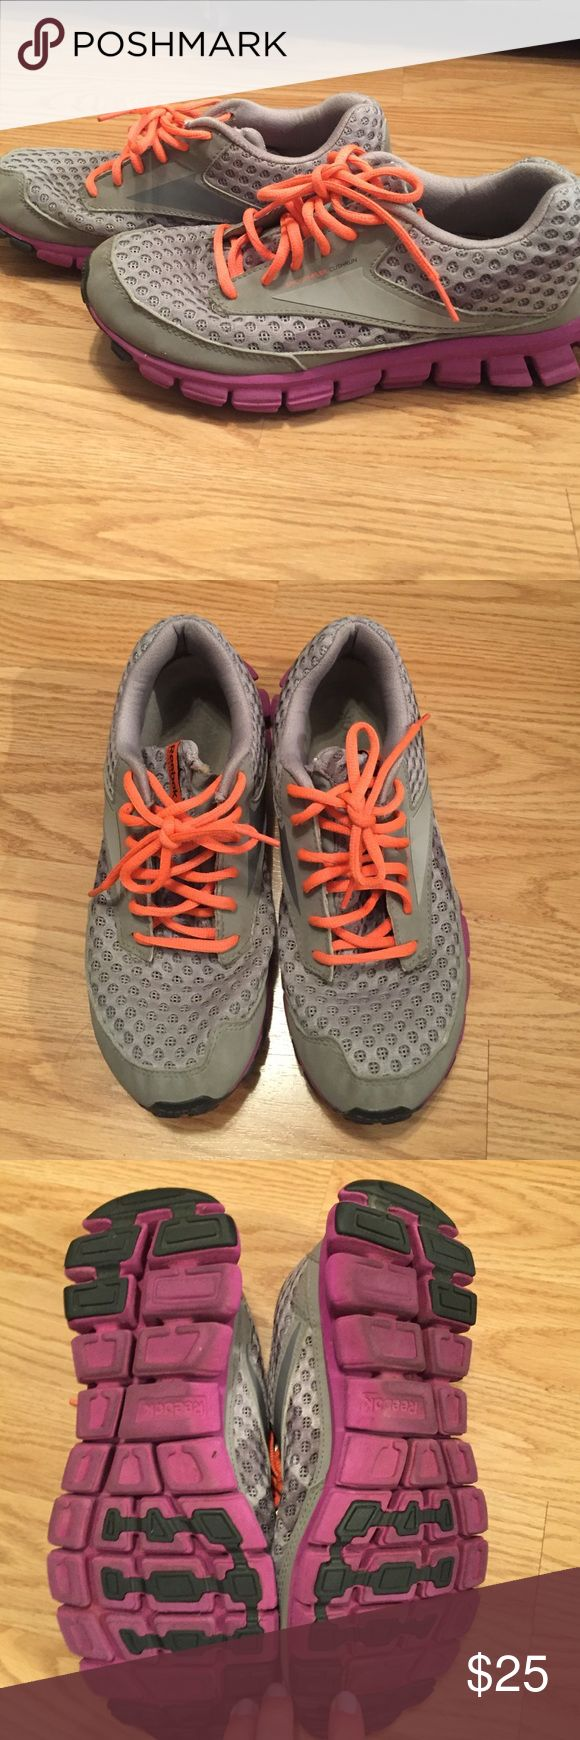 Reebok SmoothFlex Cushrun Running Shoe These gray running shoes with purple soles and neon orange laces are lightweight and in great shape! Awesome colors and a great fit! Reebok Shoes Sneakers